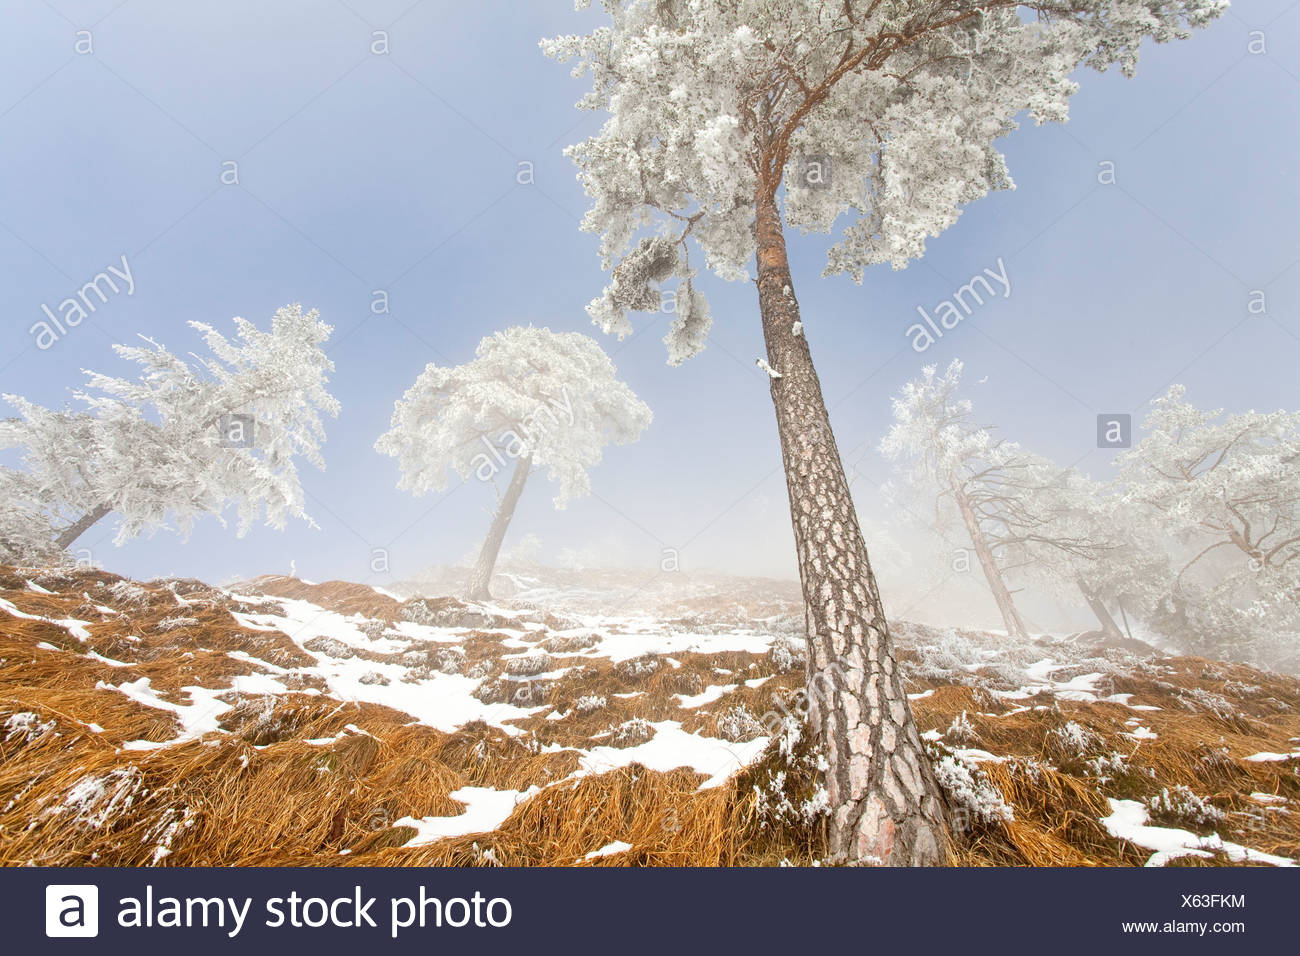 Snow-covered pine trees (Pinus sylvestris) at Untersberg mountain, Berchtesgaden, Germany, low angle view - Stock Image